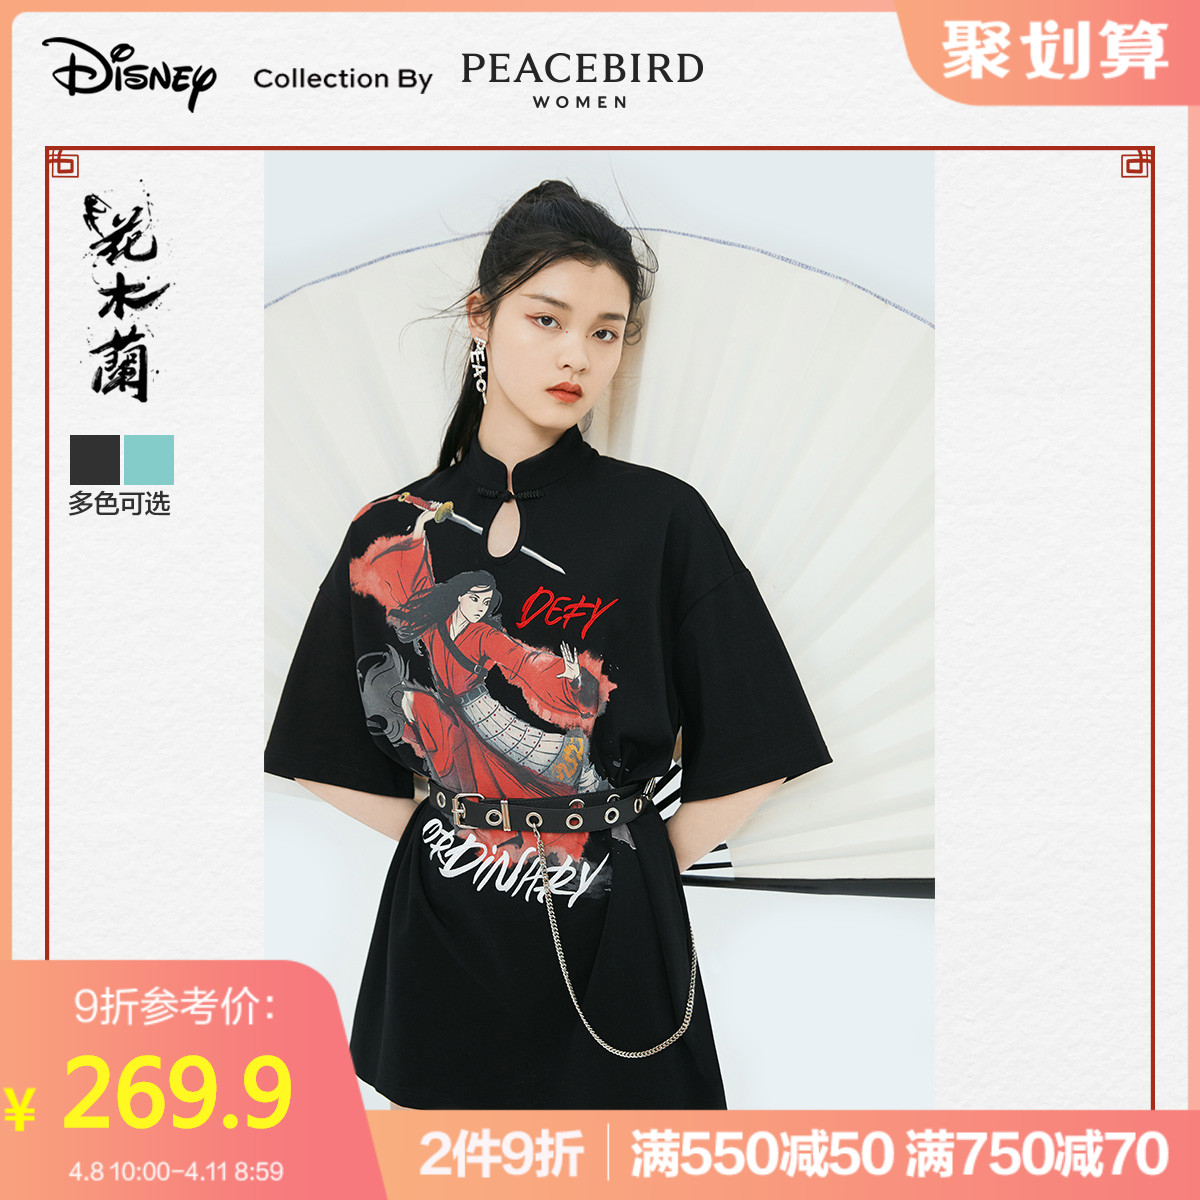 Disneyland flower Mulan and Taiping bird embroidery black dress women's turnbuckle cheongsam 2020 new summer